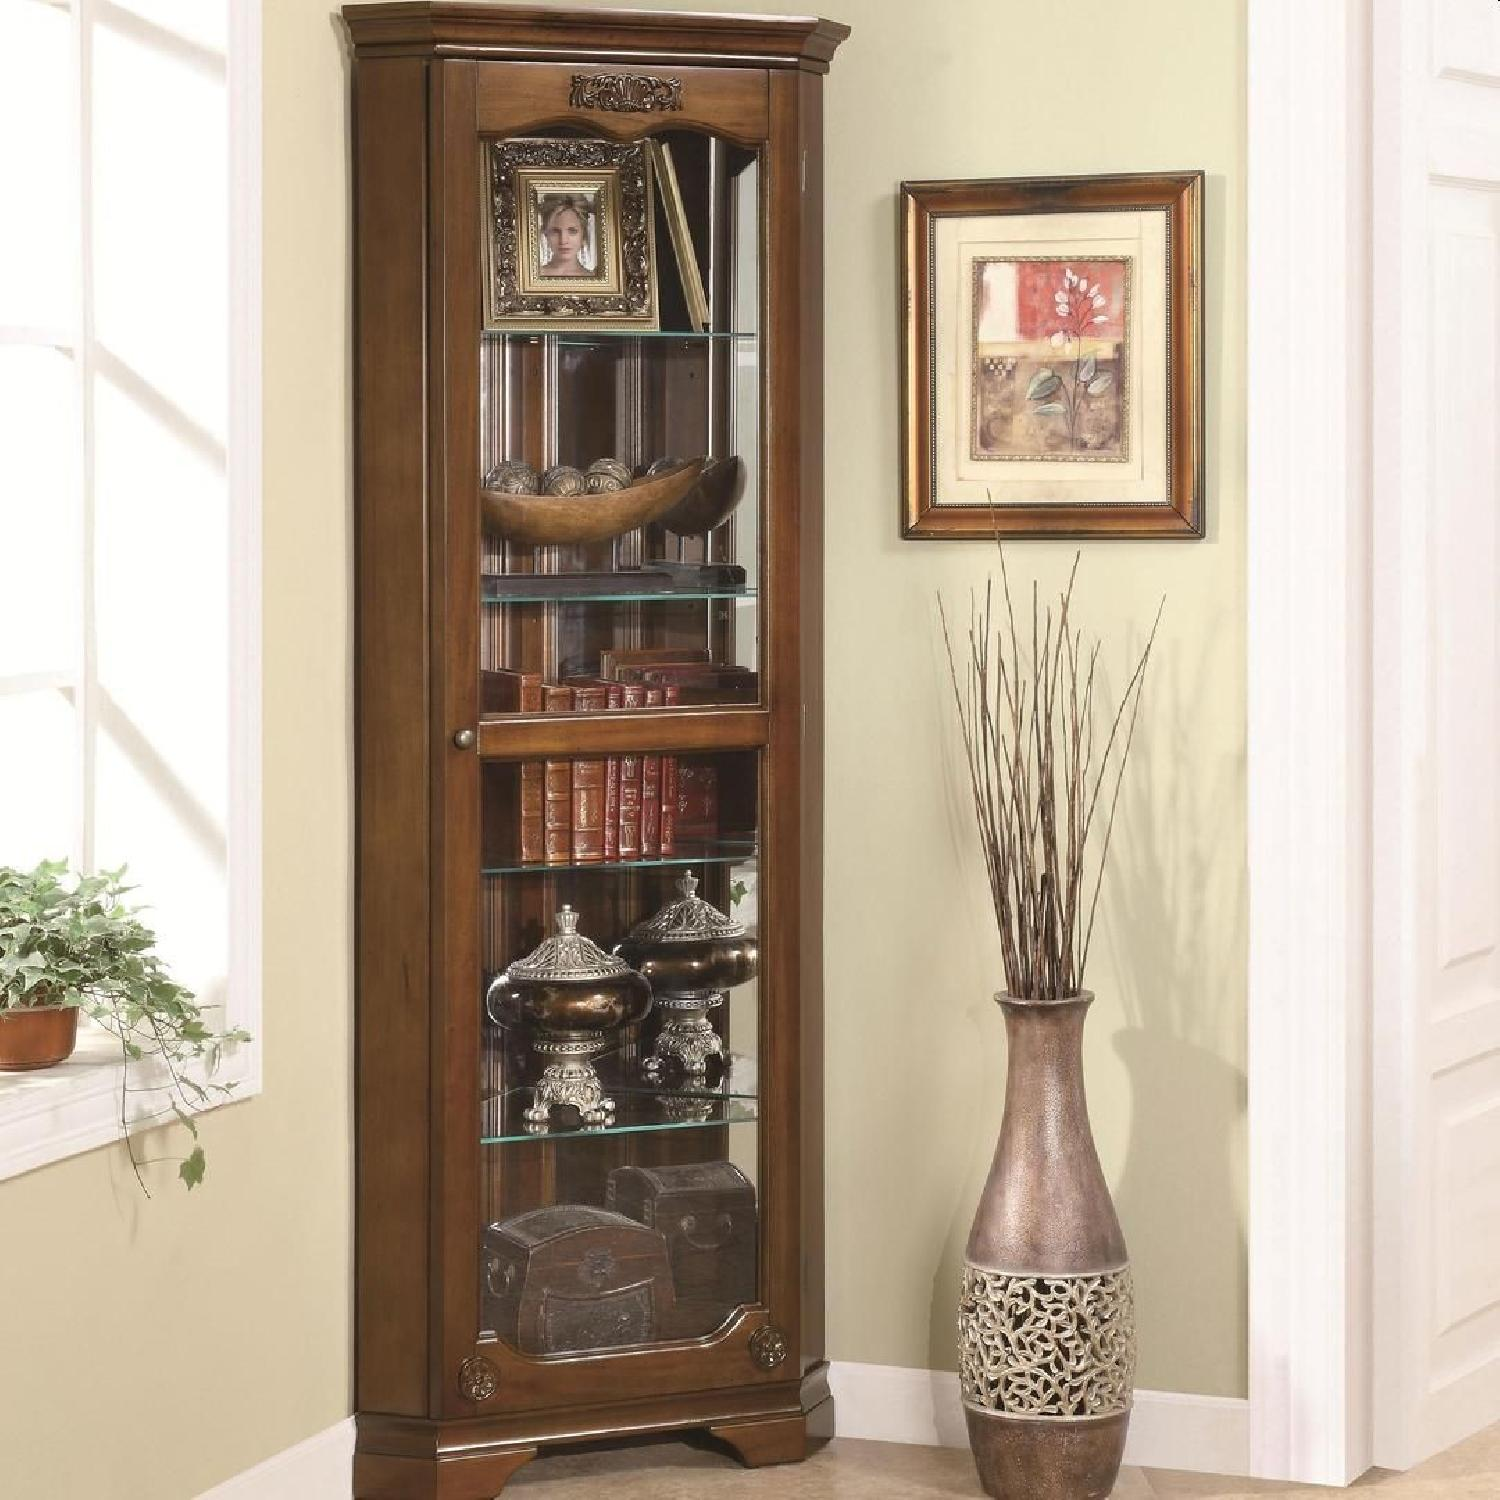 Classic Curio Cabinet in Golden Brown Finish - image-2